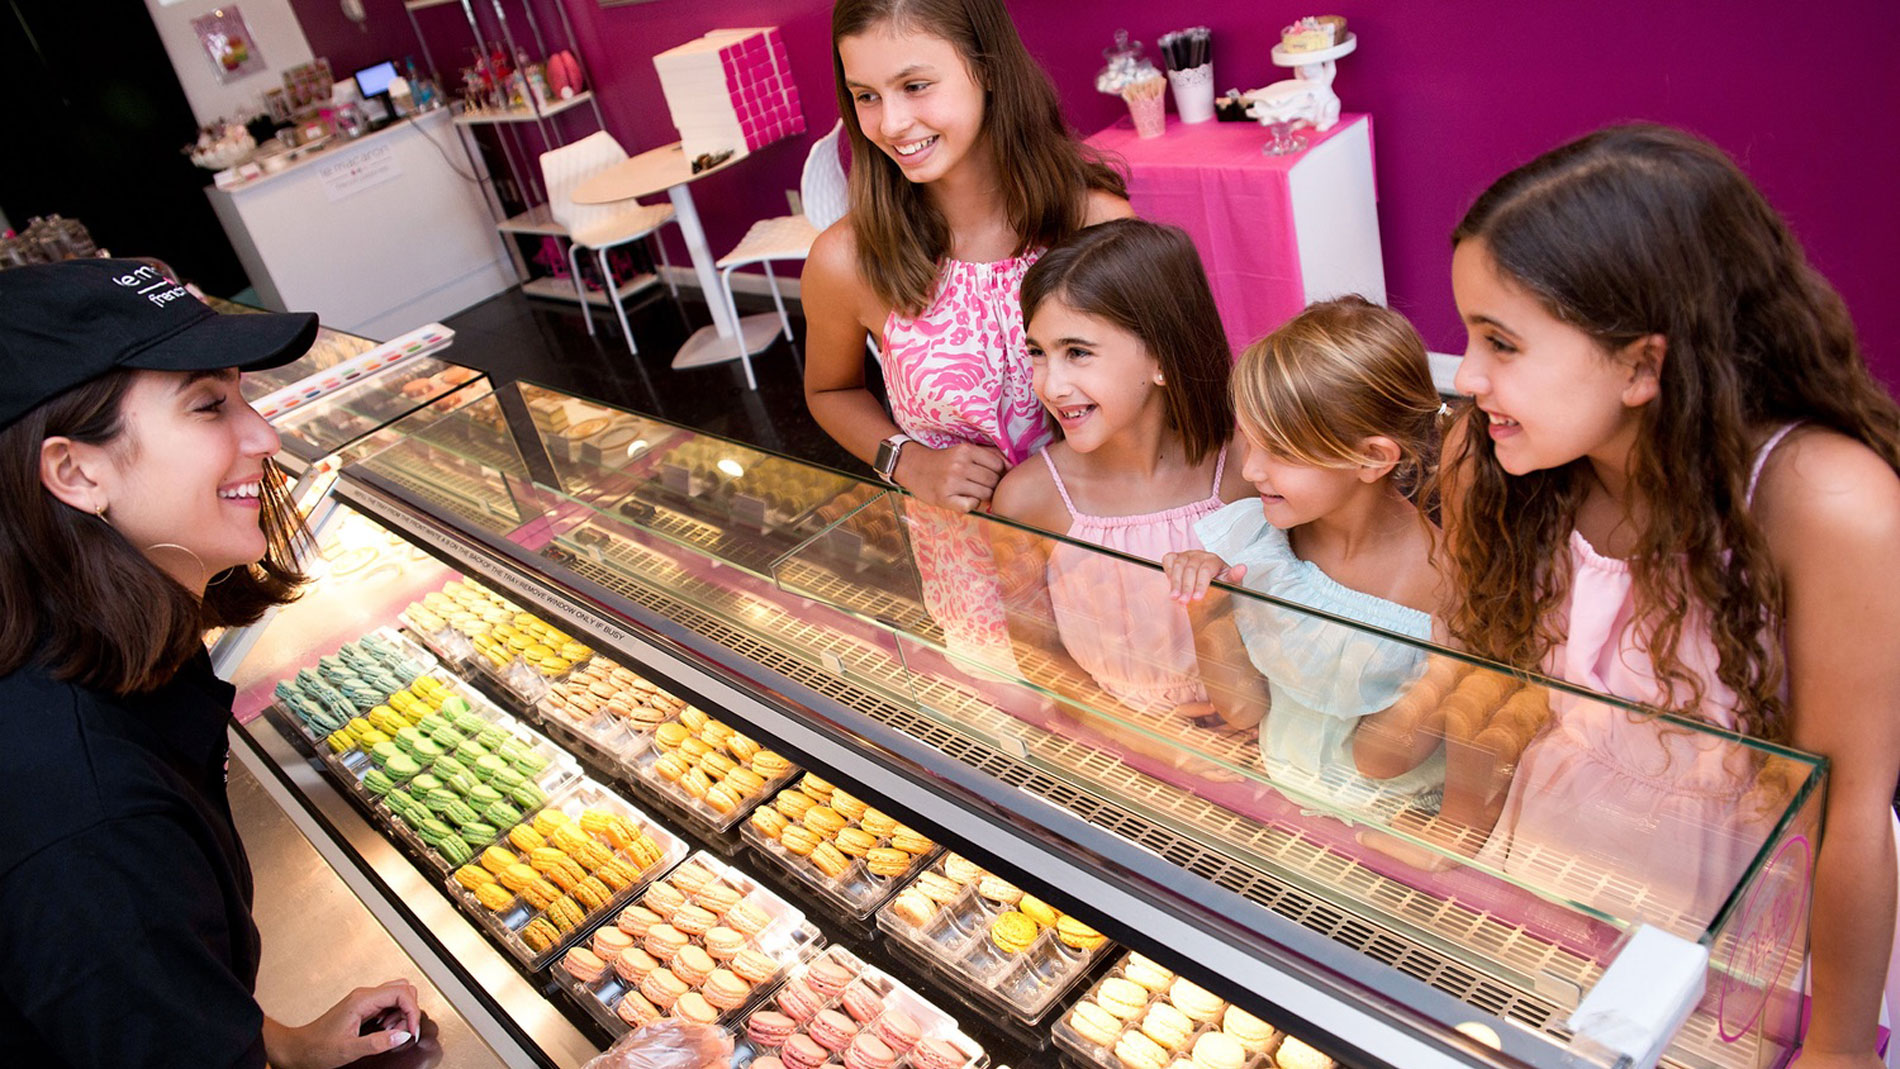 a woman behind a counter helping children select macarons